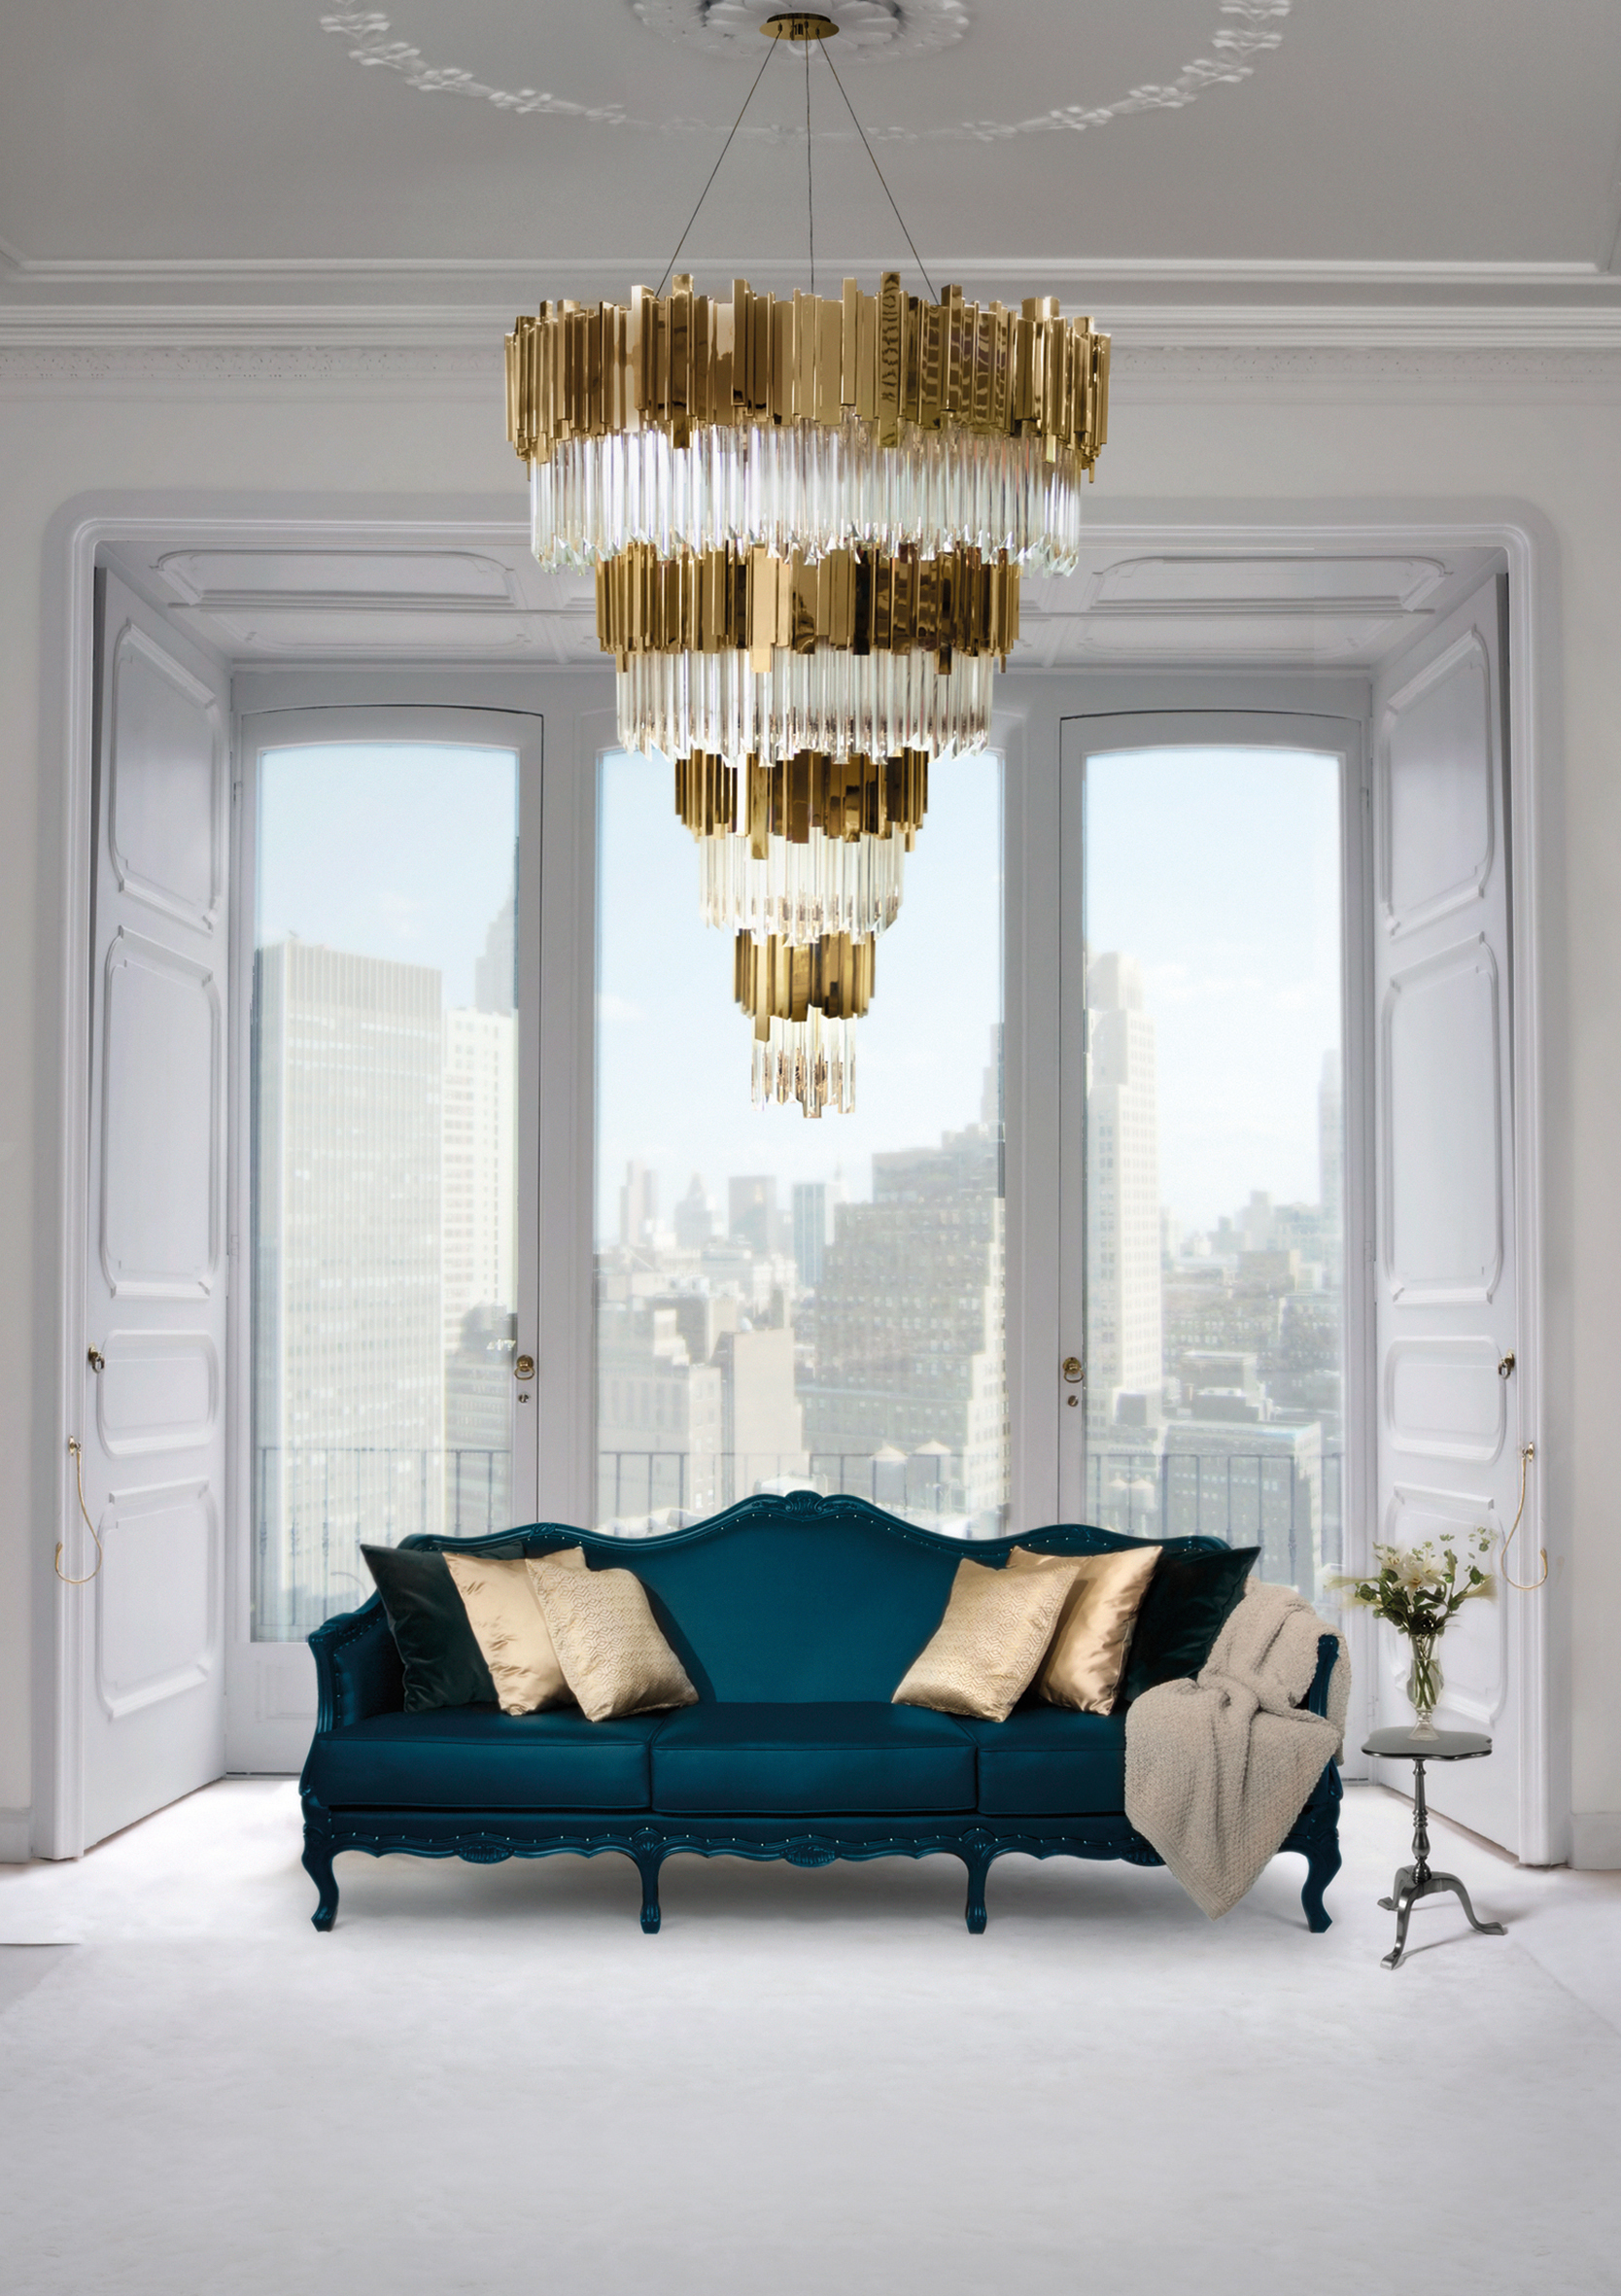 Empire Chandelier Luxury Interiors luxury interiors The Empire Family: brighten up your luxury interiors Empire Chandelier Luxury Interiors